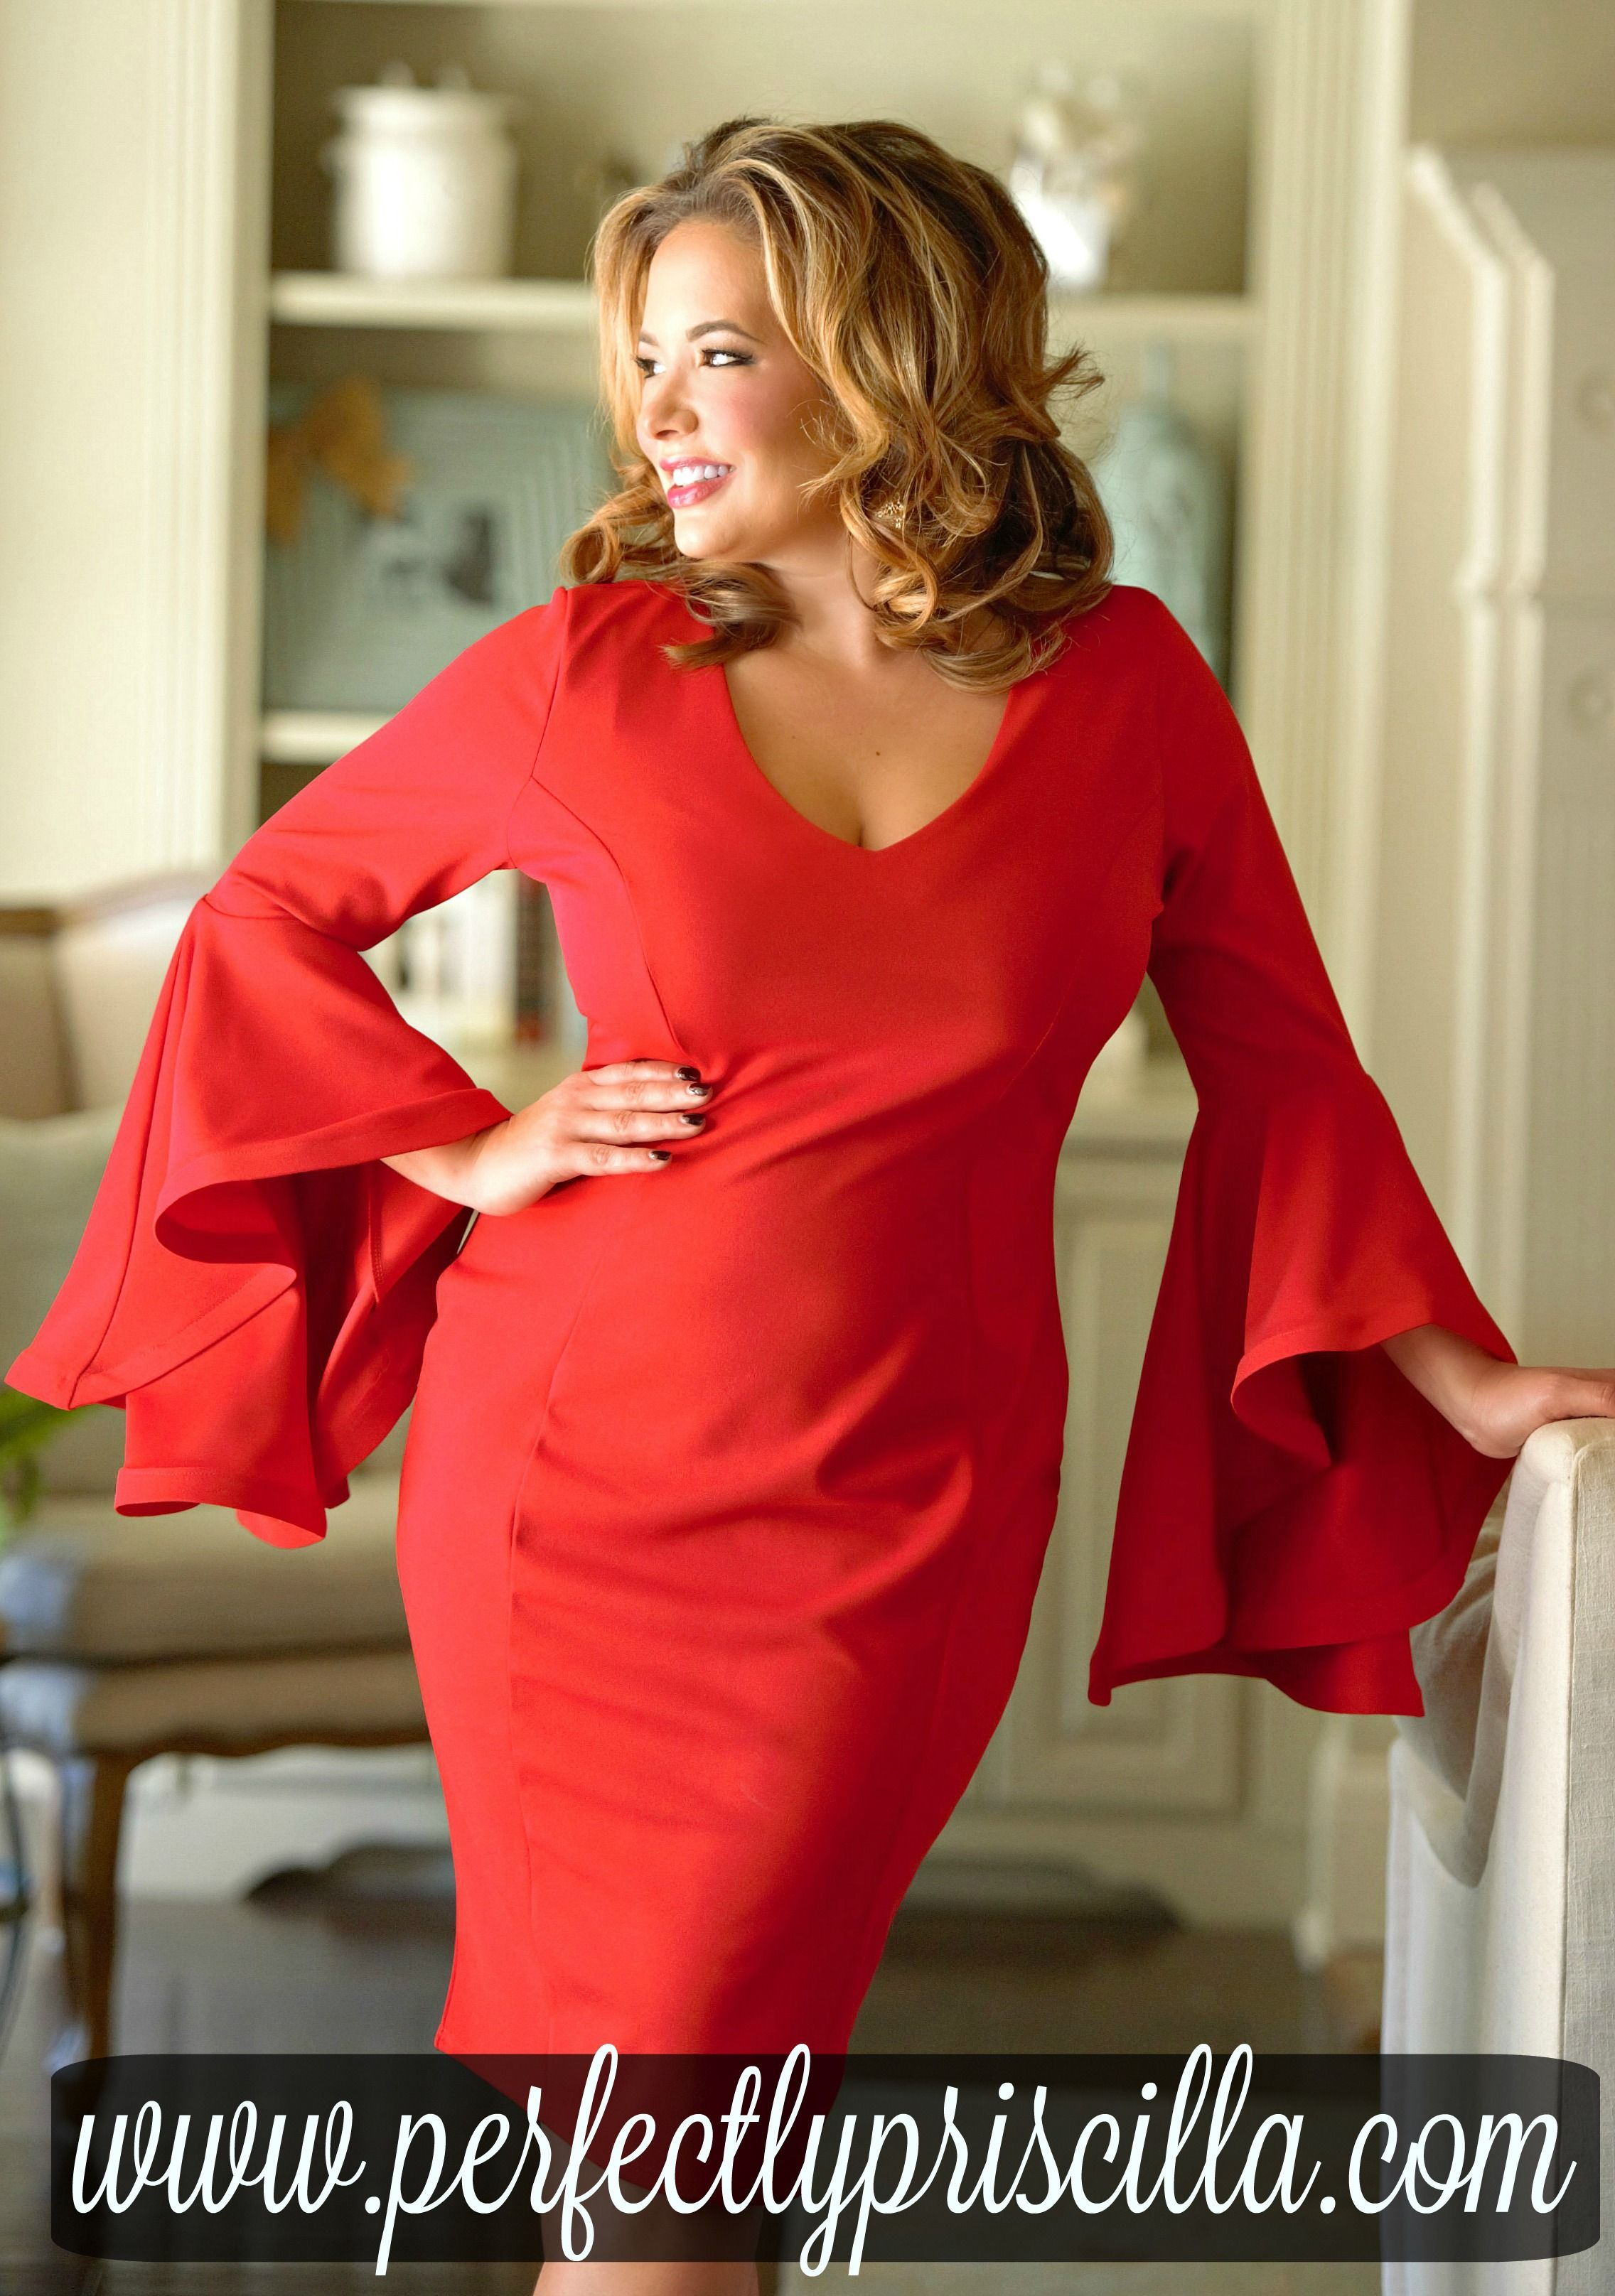 b6a8cf4acfe formal  datenight  red  plussize  fashion  trendy  look  boutique ...